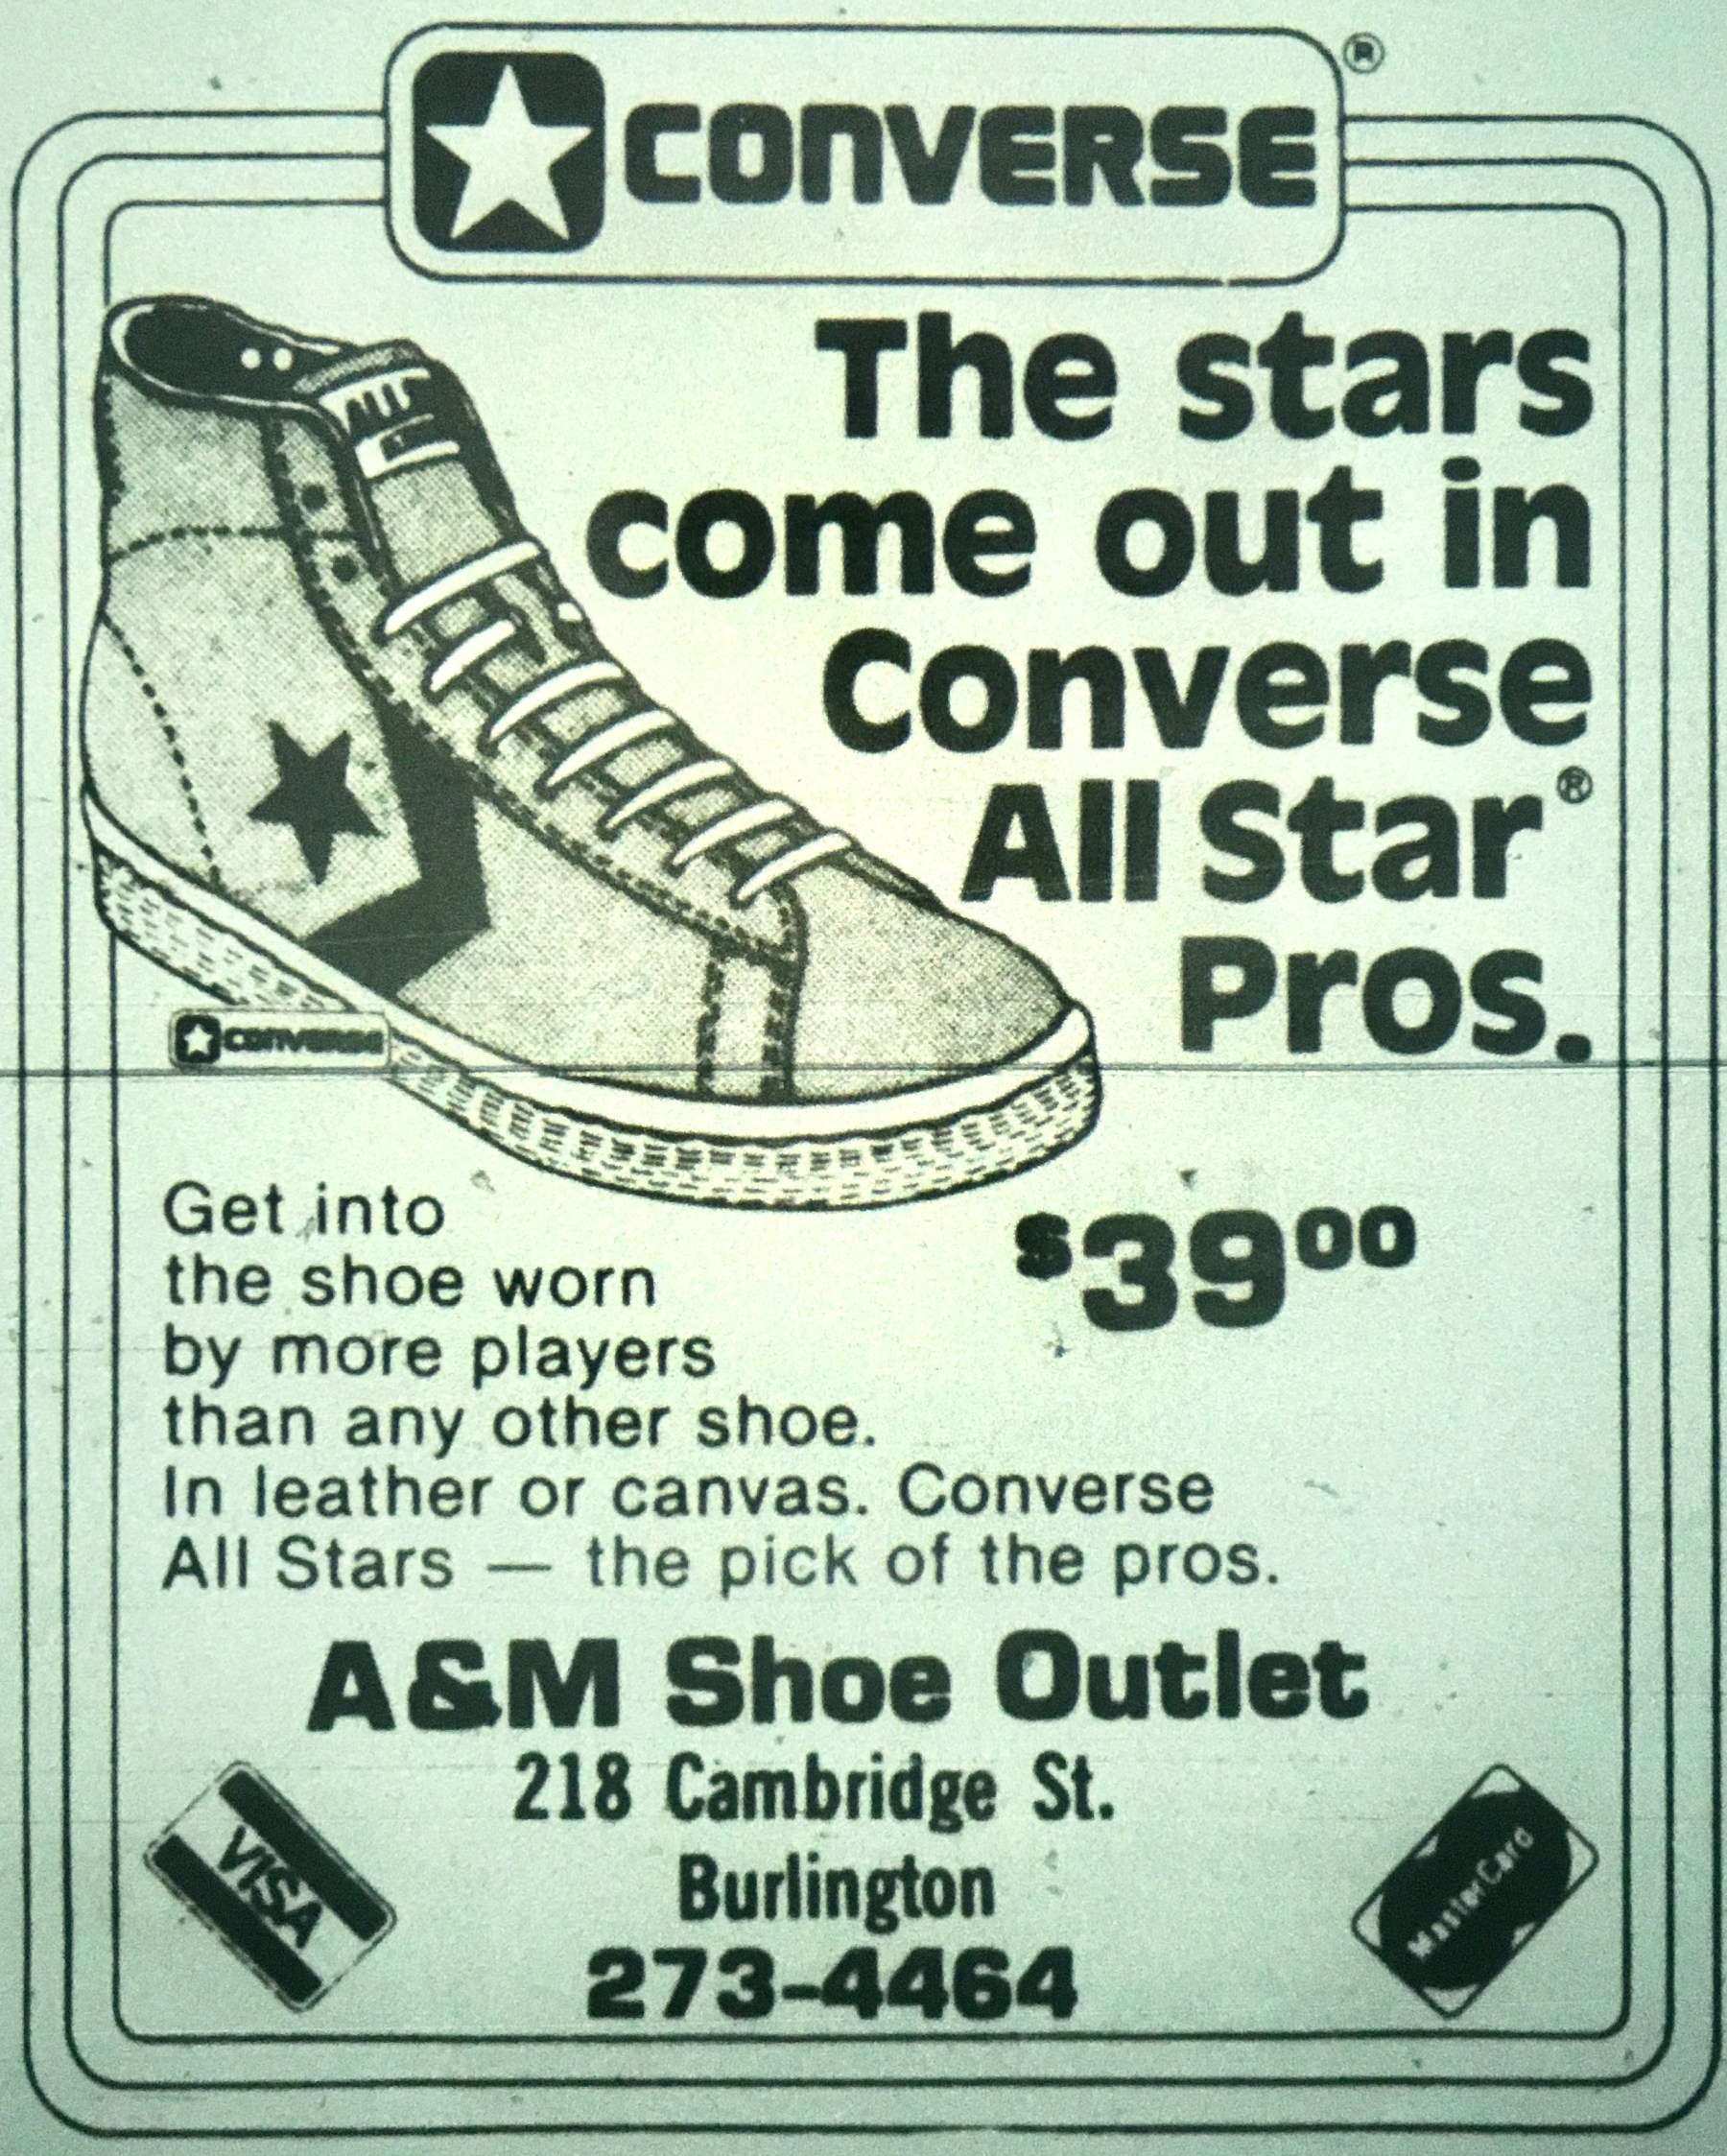 A&M Shoe Outlet, Burlington MA